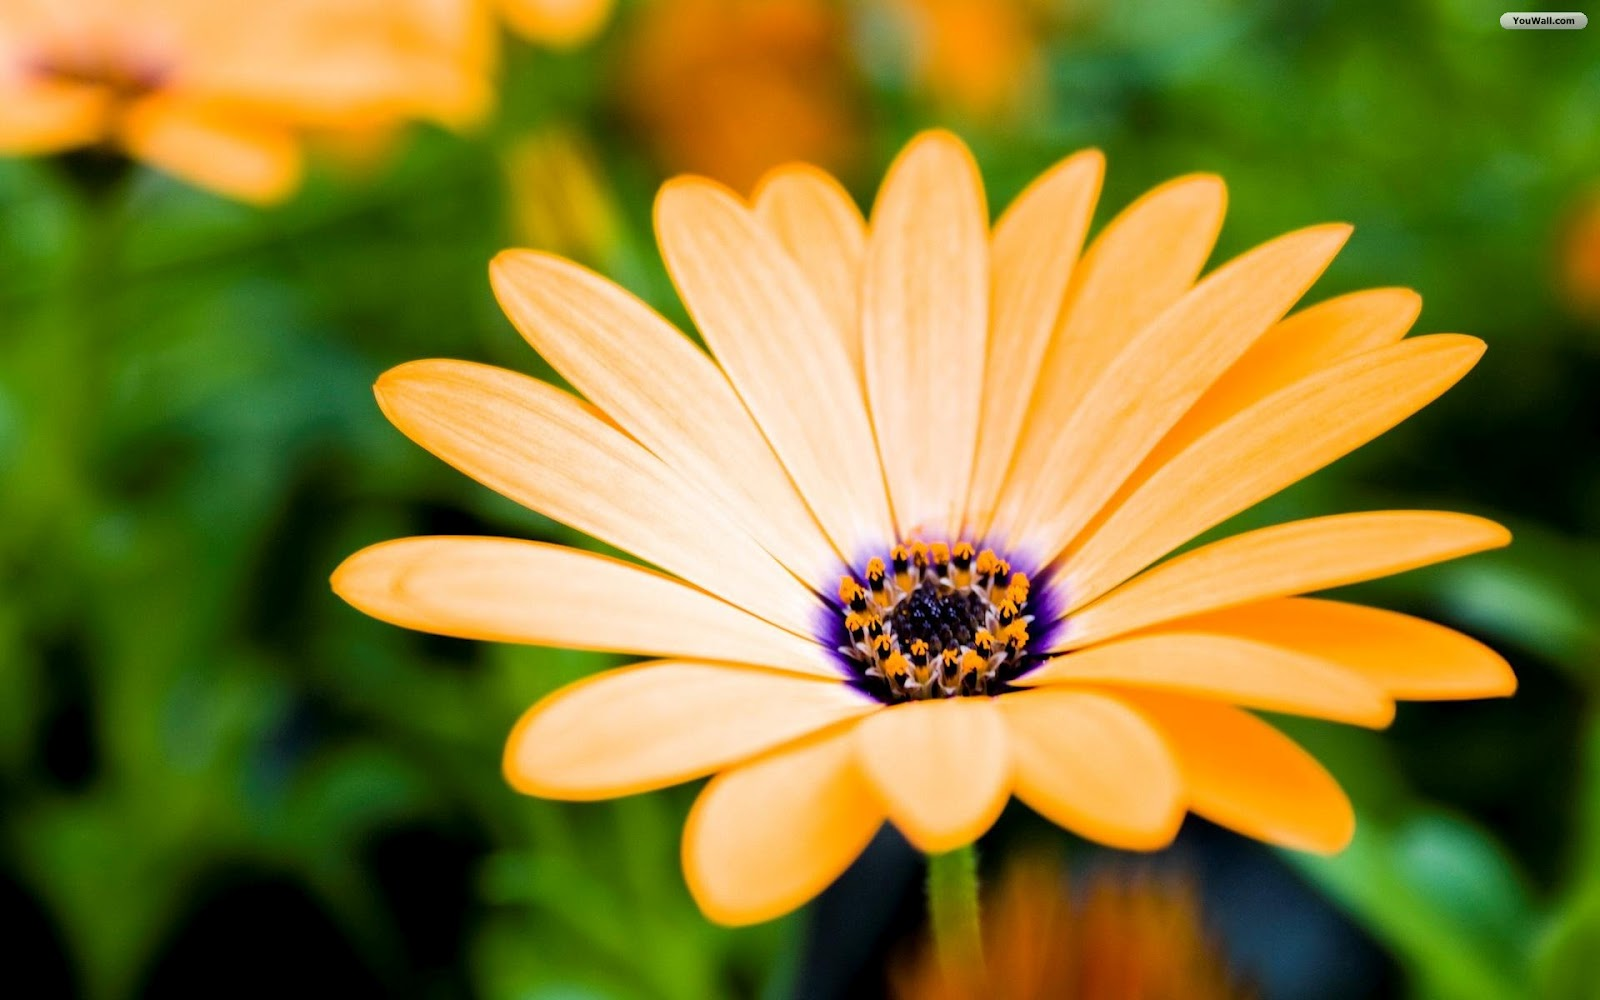 All photos gallery: Free flower wallpaper, free flowers ...